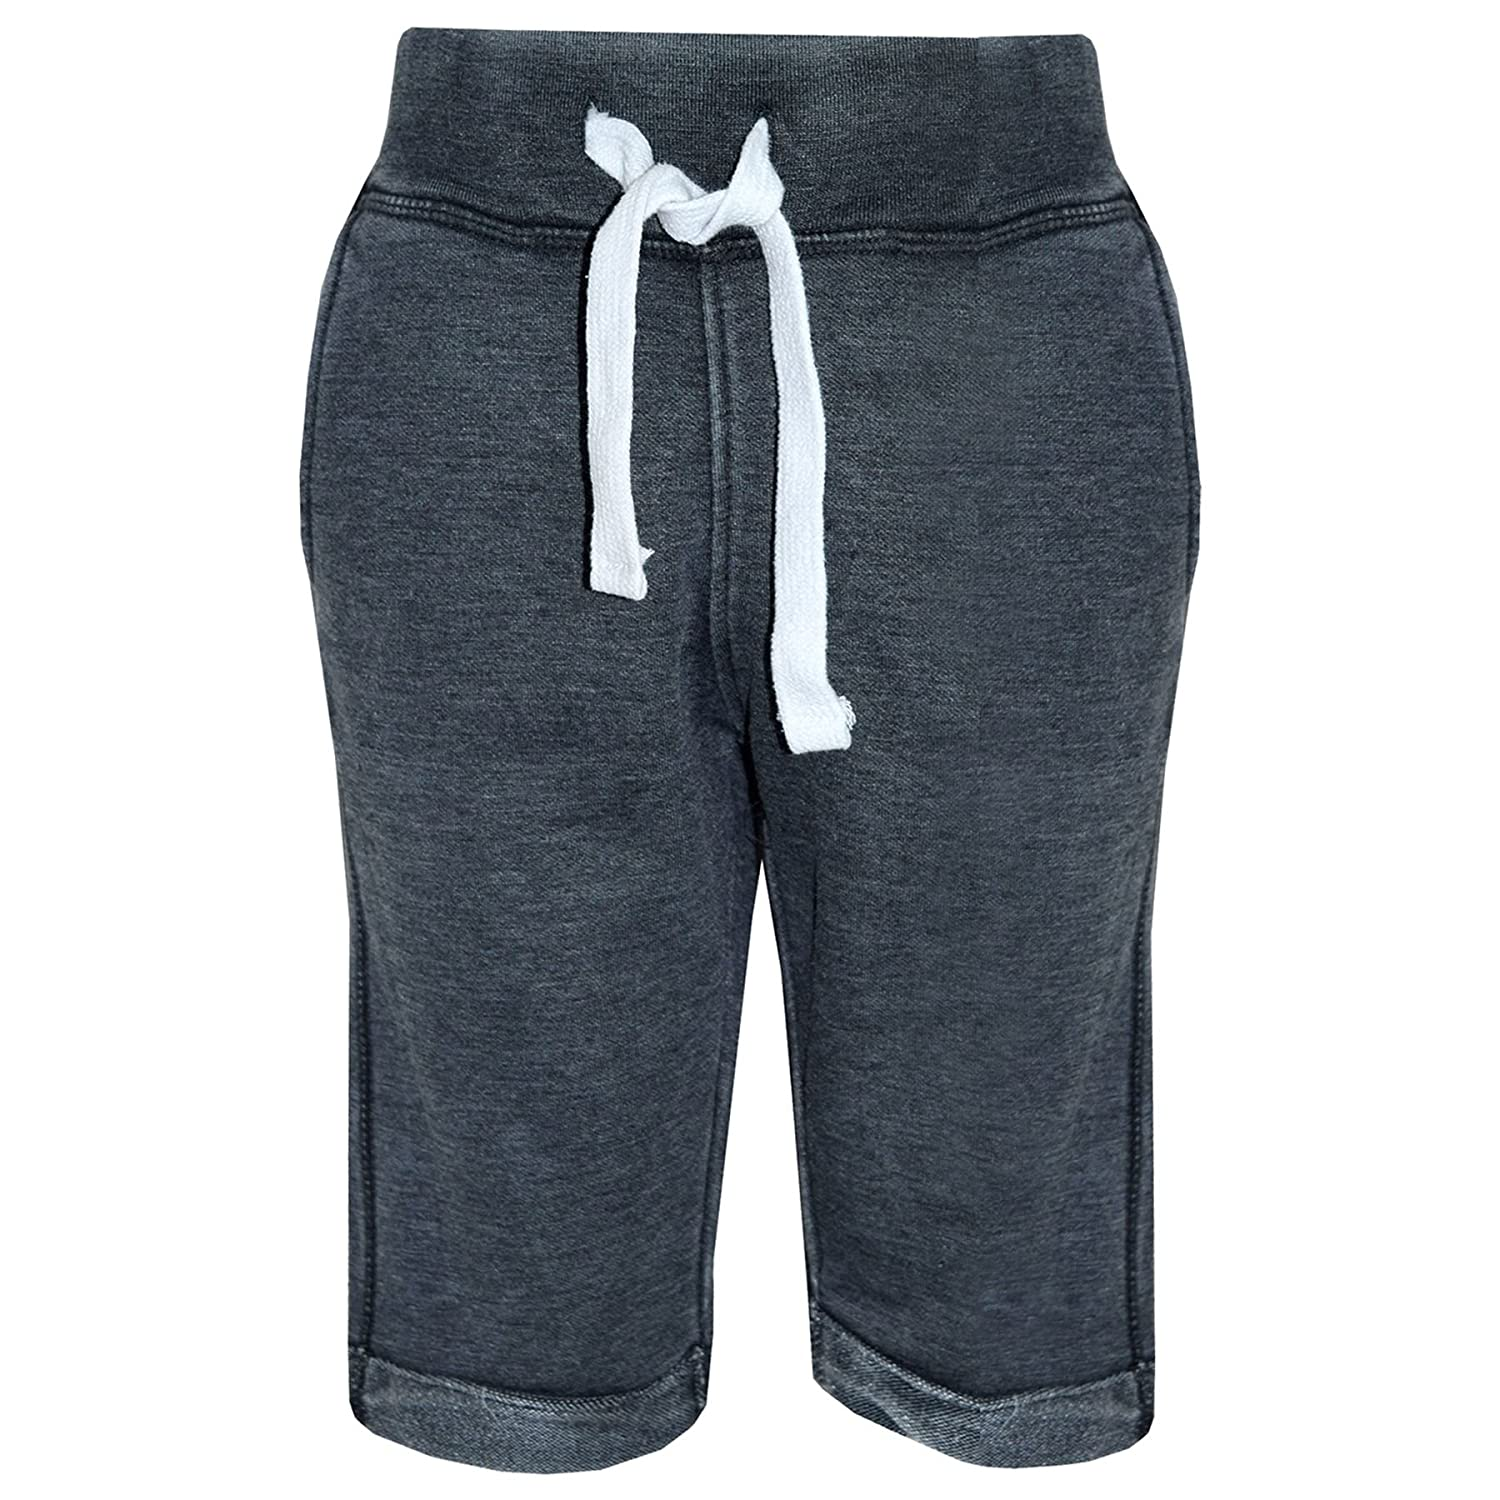 A2Z 4 Kids Boys Summer Shorts Kids Fleece Black Chino Shorts Knee Length Half Pant New Age 3 4 5 6 7 8 9 10 11 12 13 Years